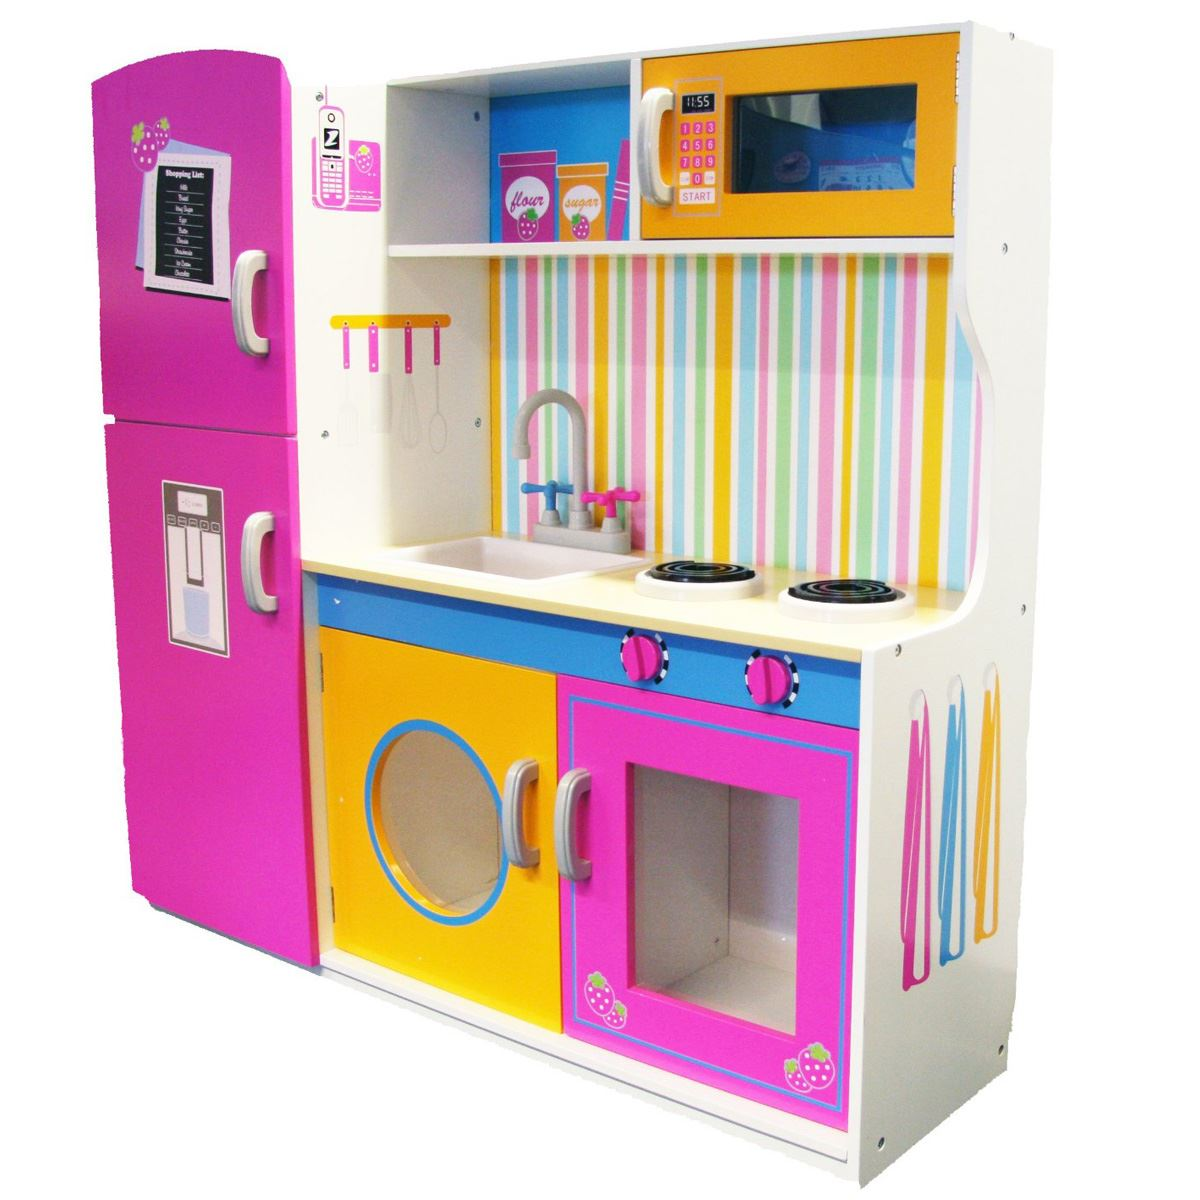 Childrens Toy Kitchen Childrens Wooden Toy Kitchen Unit Role Play Kids Microwave